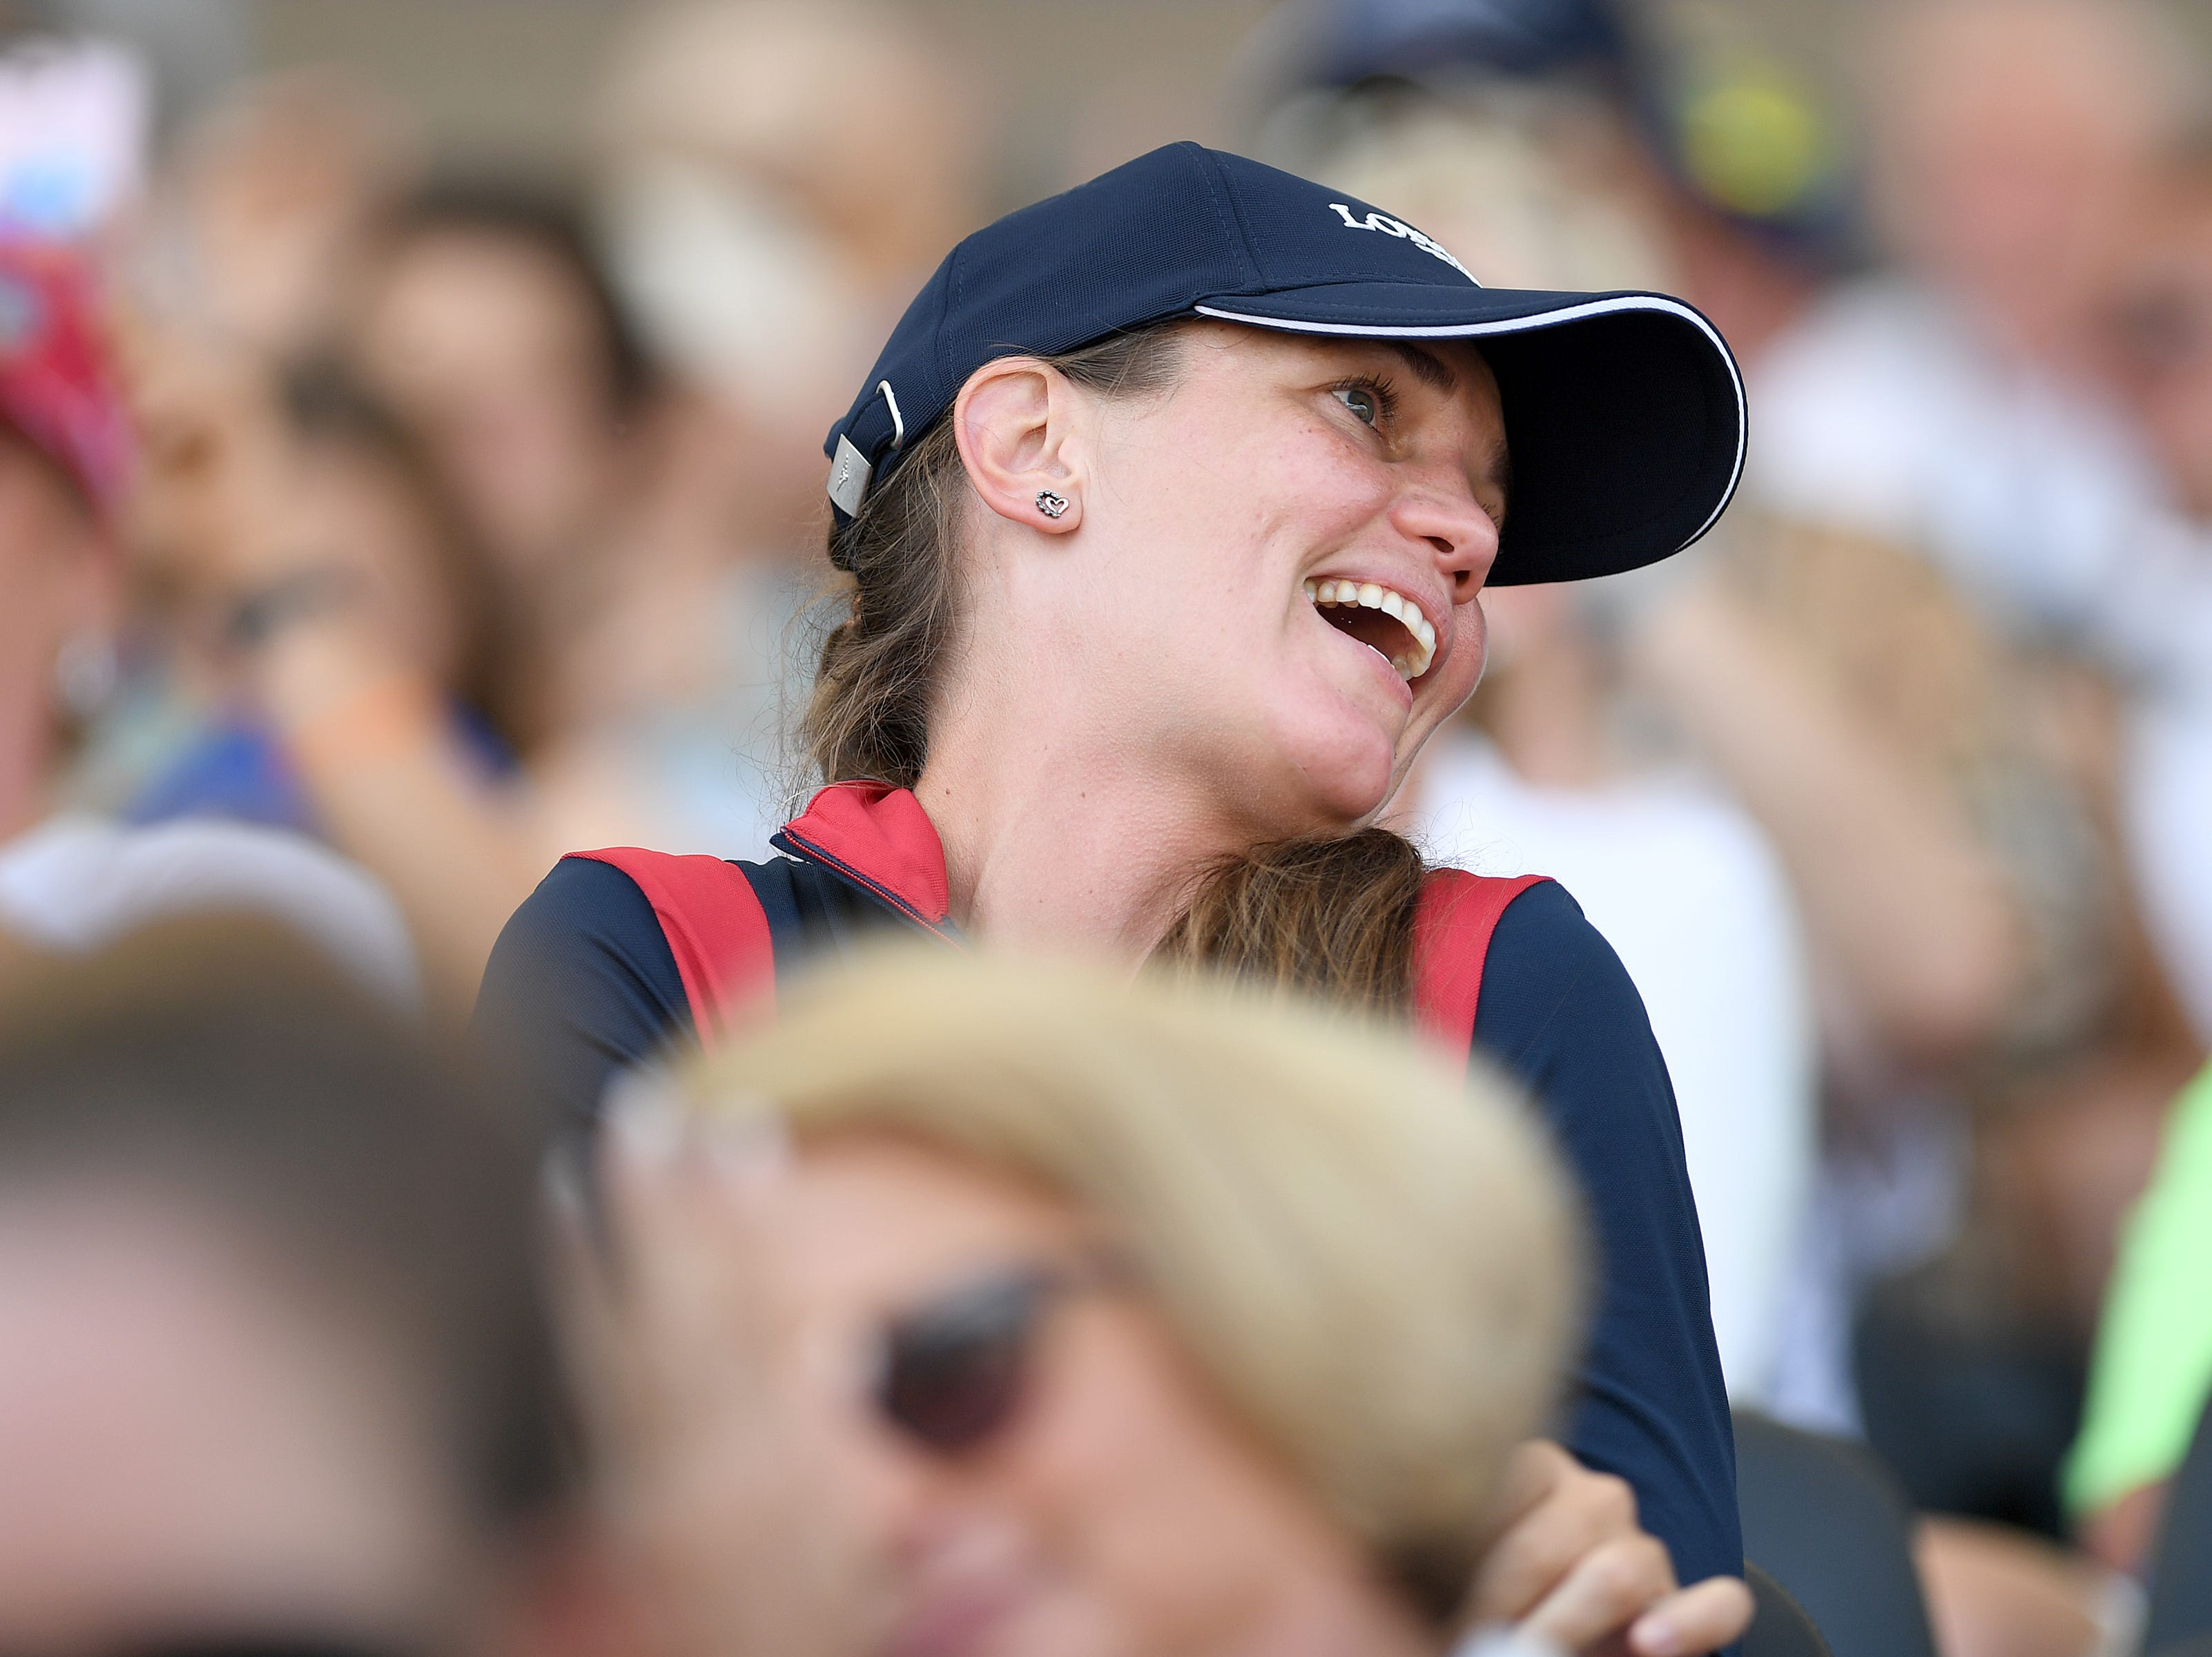 The crowd applauds after American McLain Ward competes in the group jumping competition on horse, Clinta, during the FEI World Equestrian Games at the Tryon International Equestrian Center on Sept. 20, 2018.